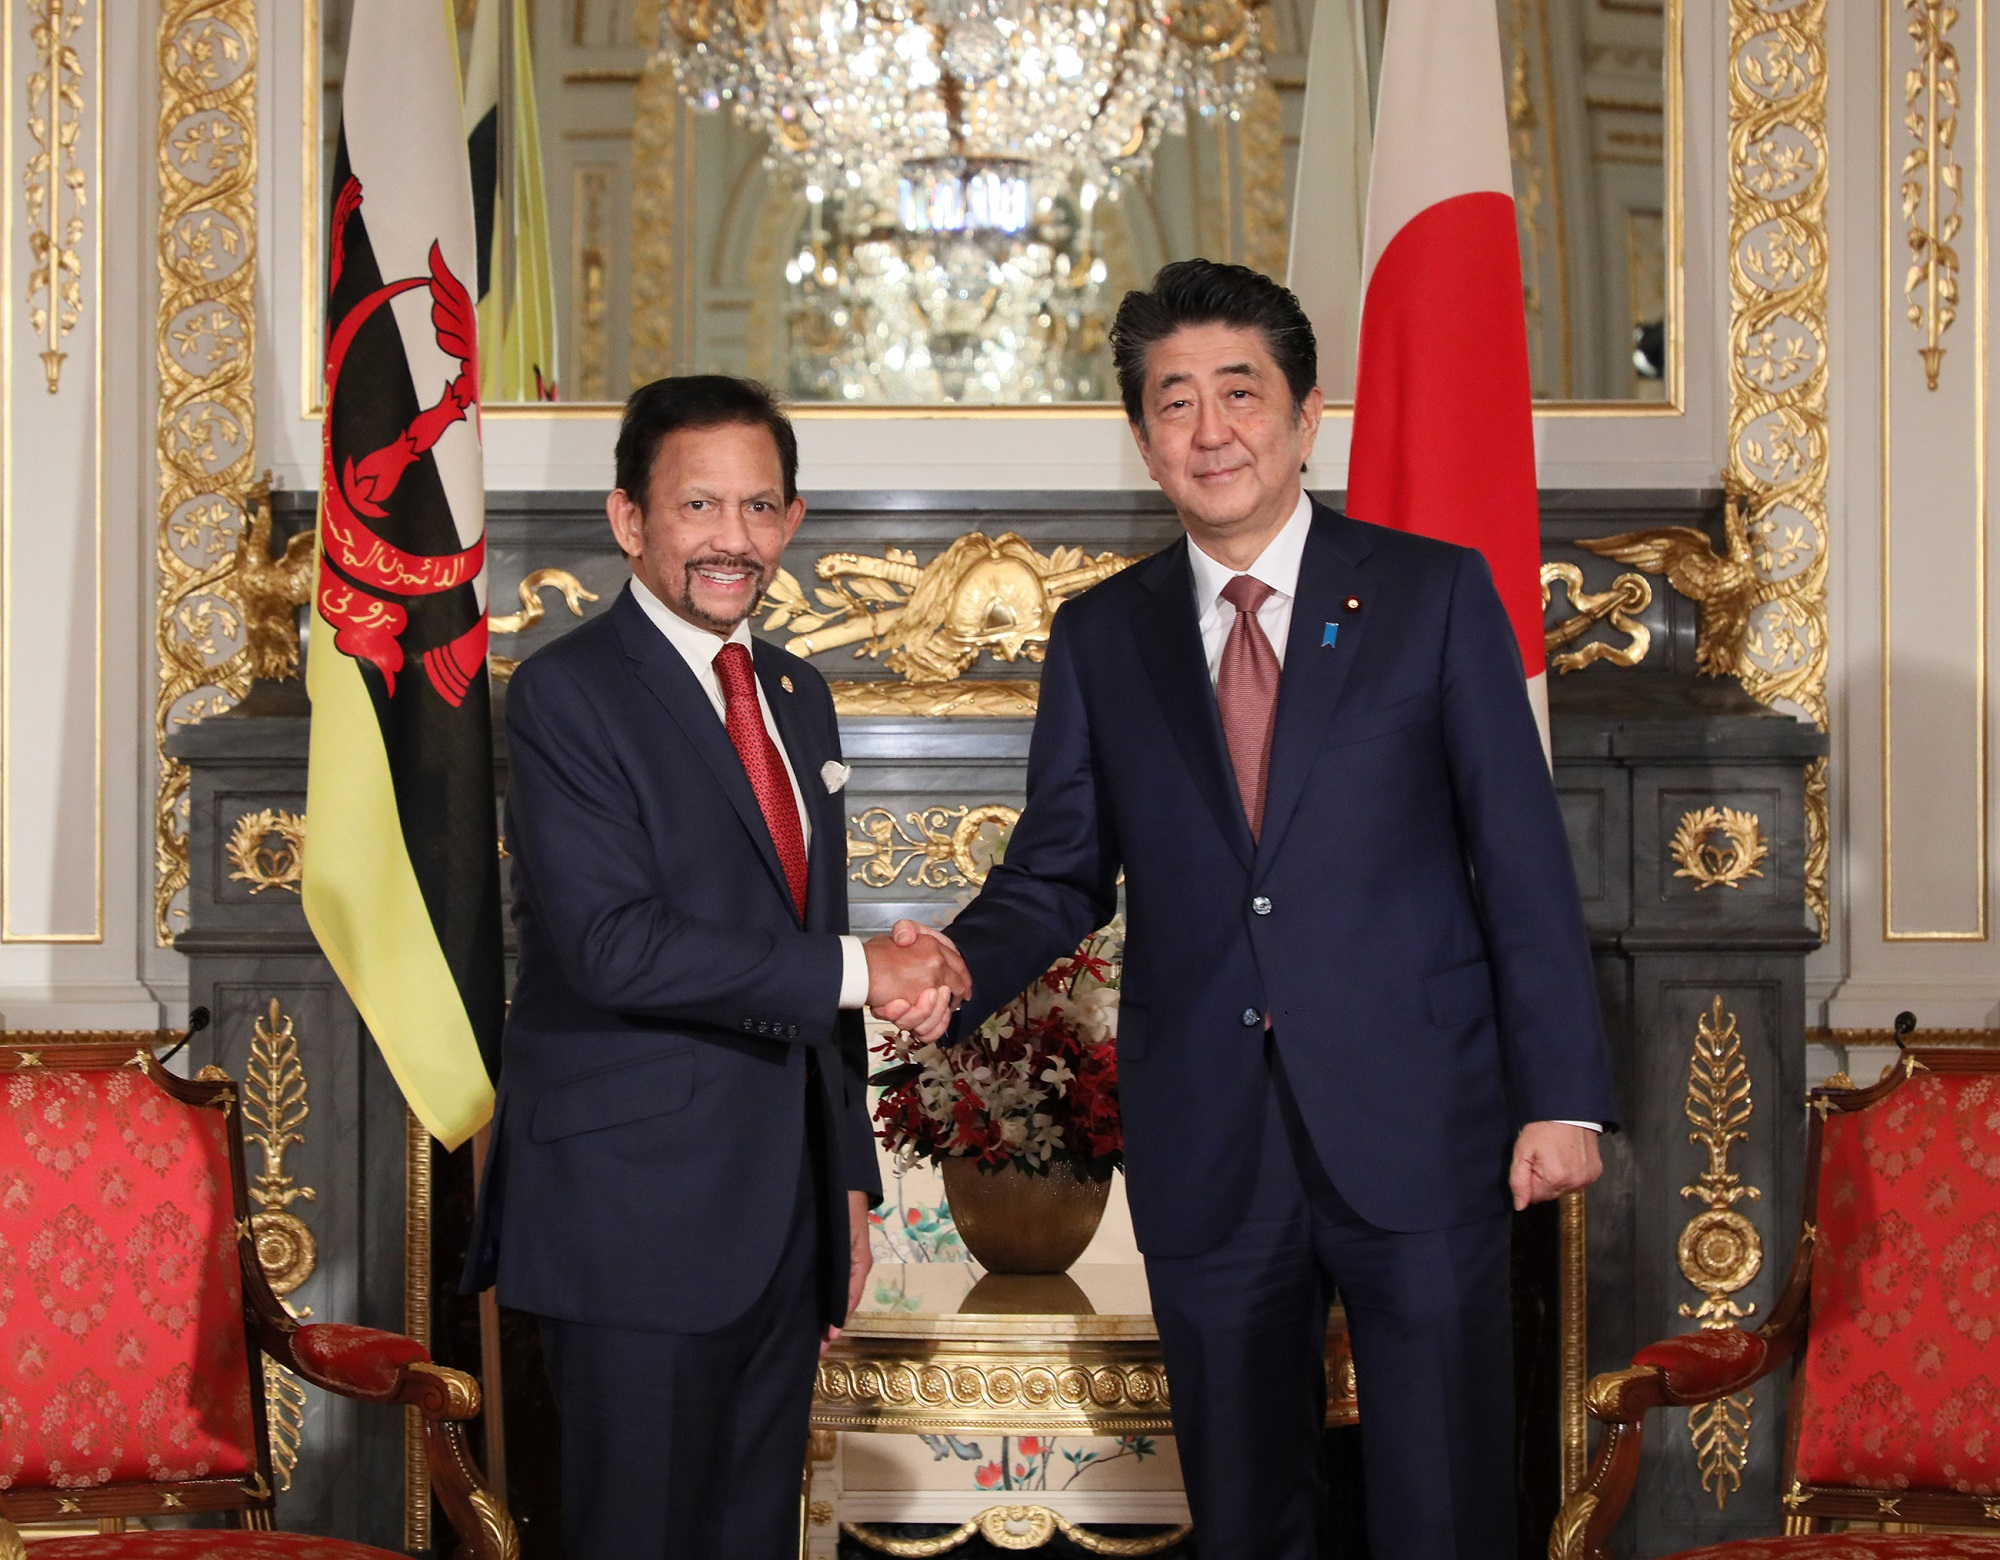 Photograph of the meeting with the Sultan of Brunei Darussalam (1)